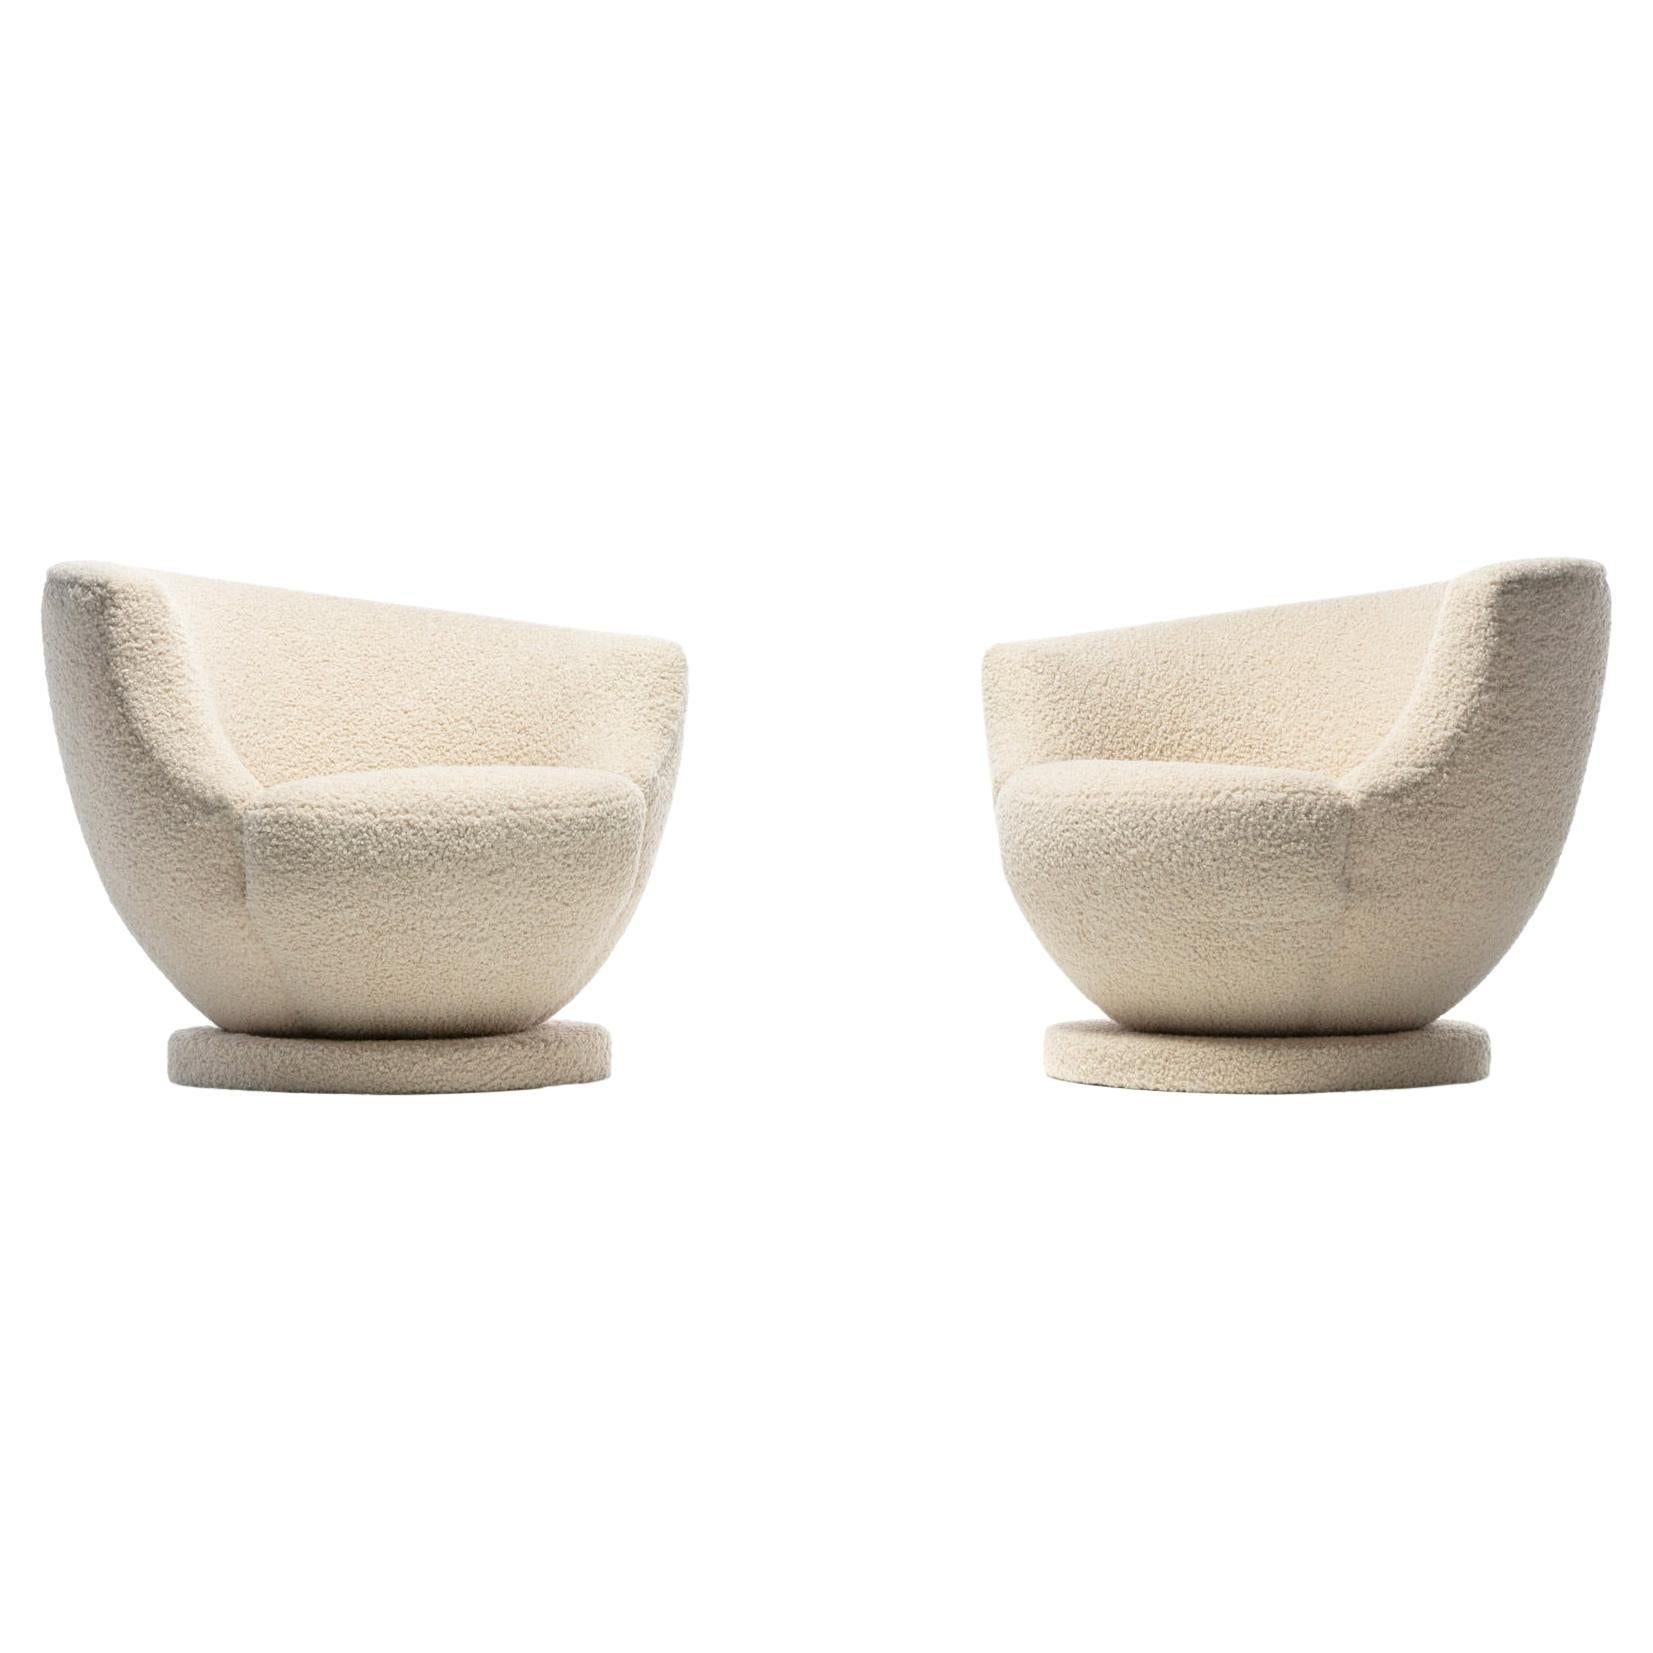 Pair of Vladimir Kagan Swivel Chairs in Ivory Bouclé by Directional